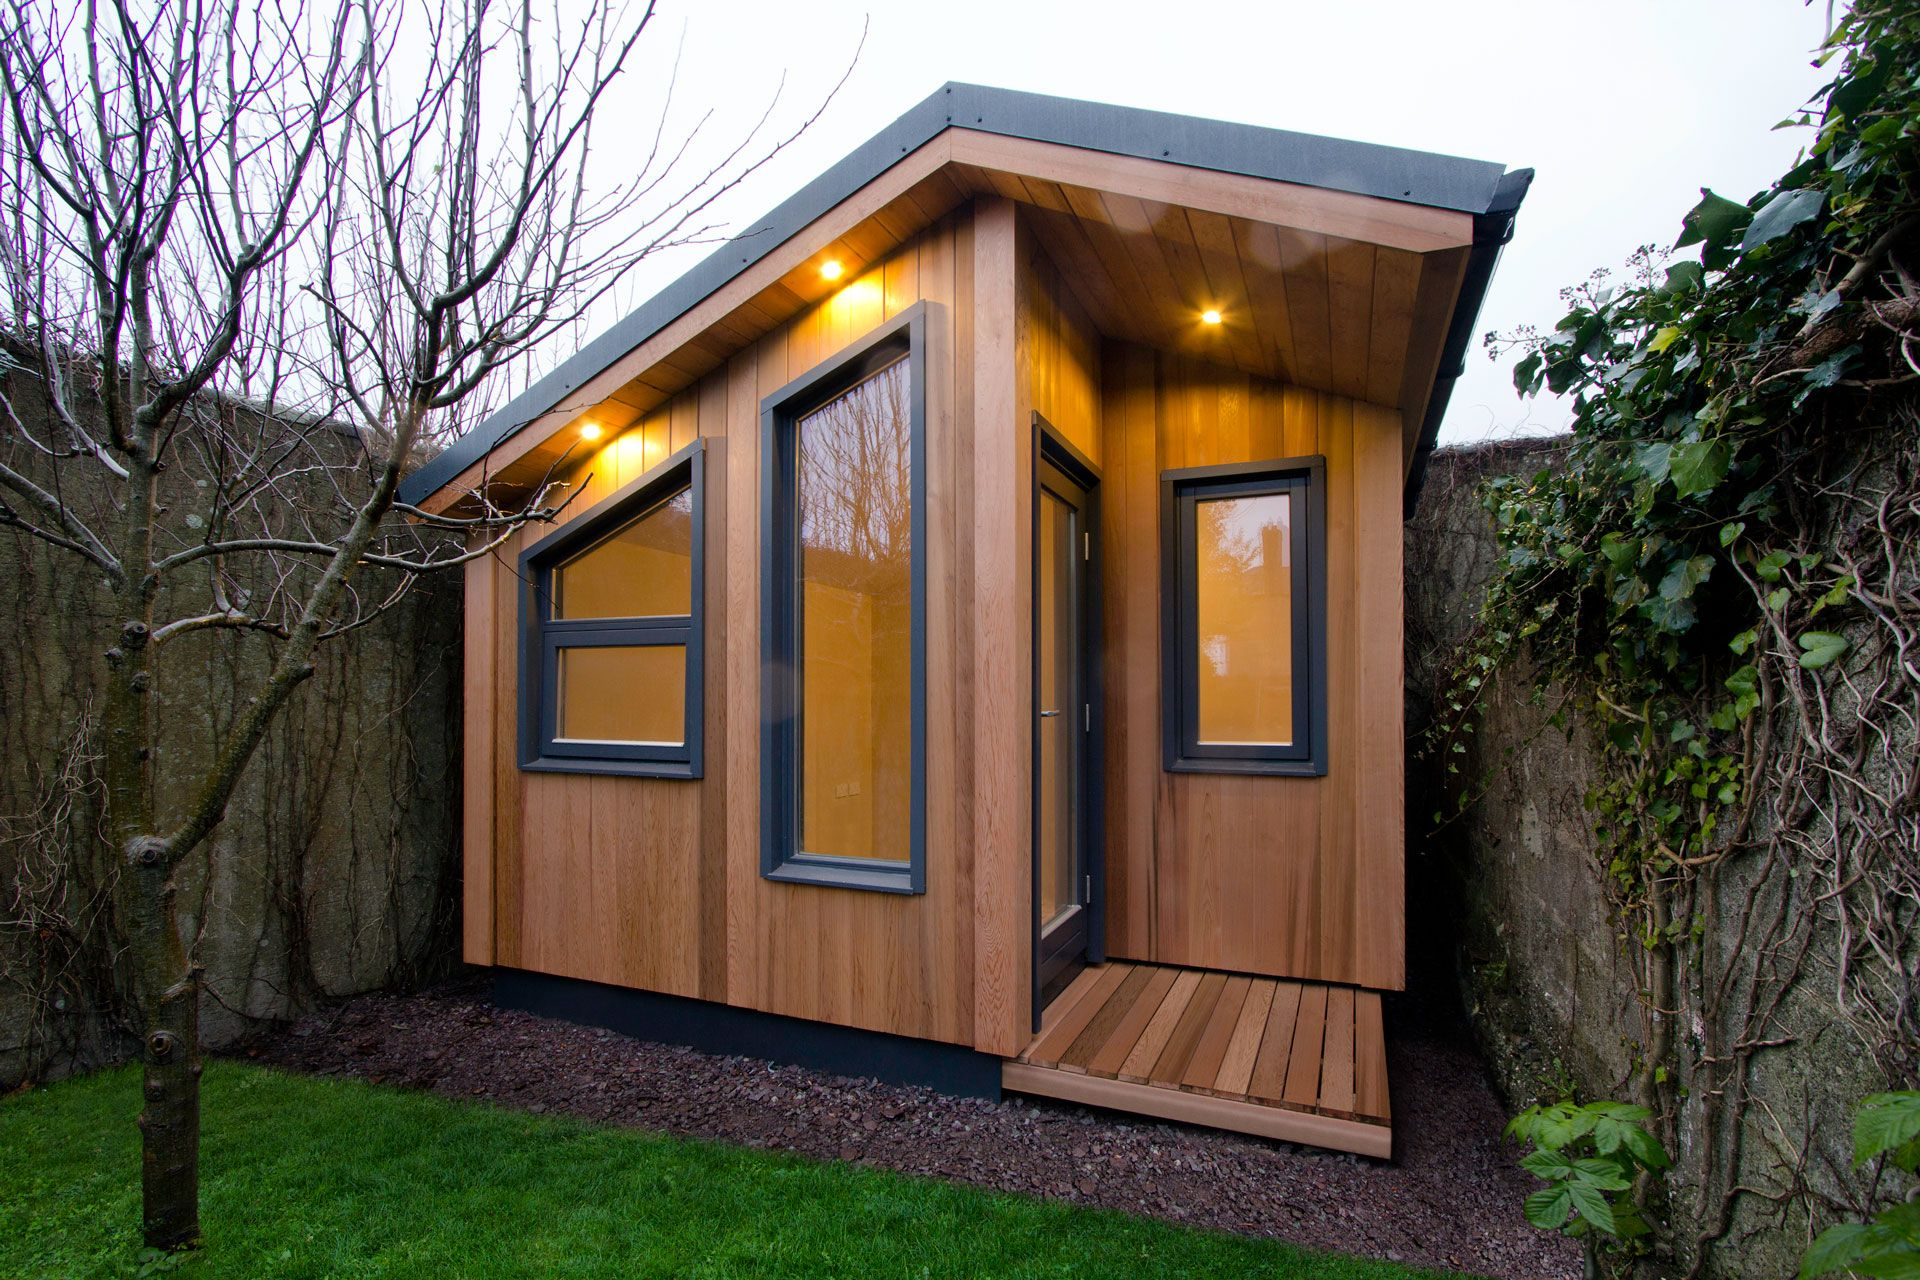 Massage therapy studio contemporary garden rooms by harrison james -  Garden Office